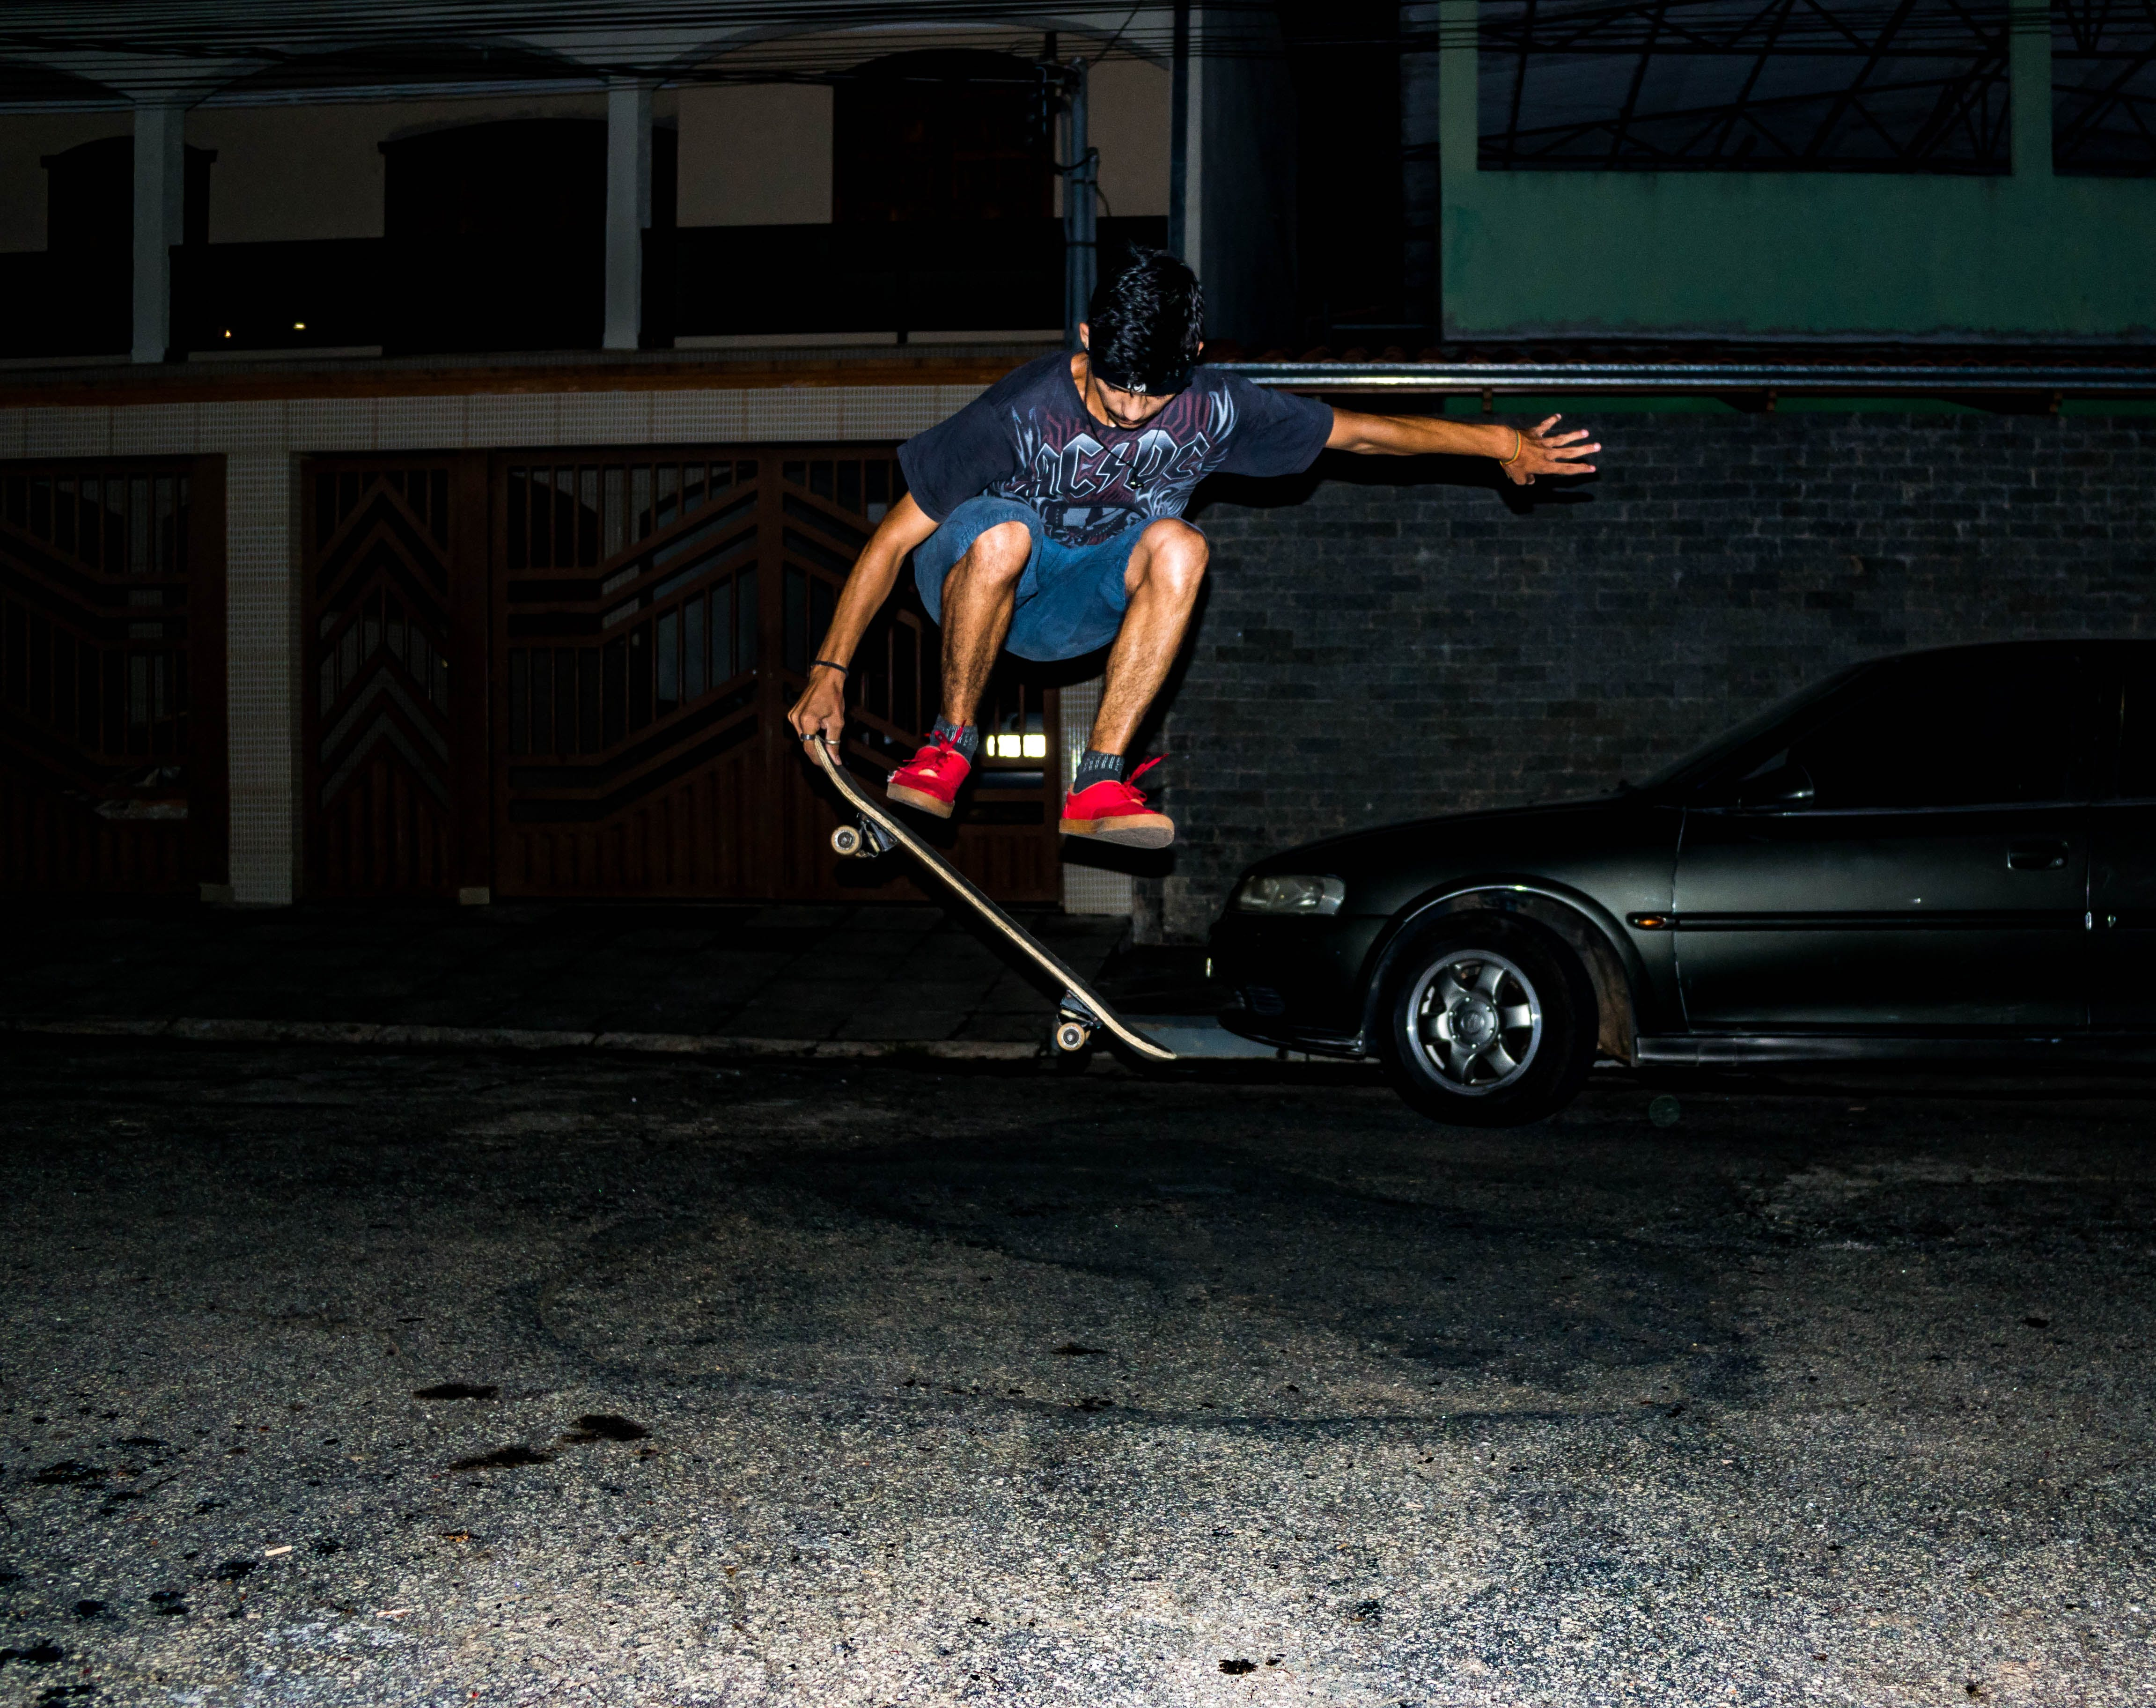 Skateboarder Doing Tricks